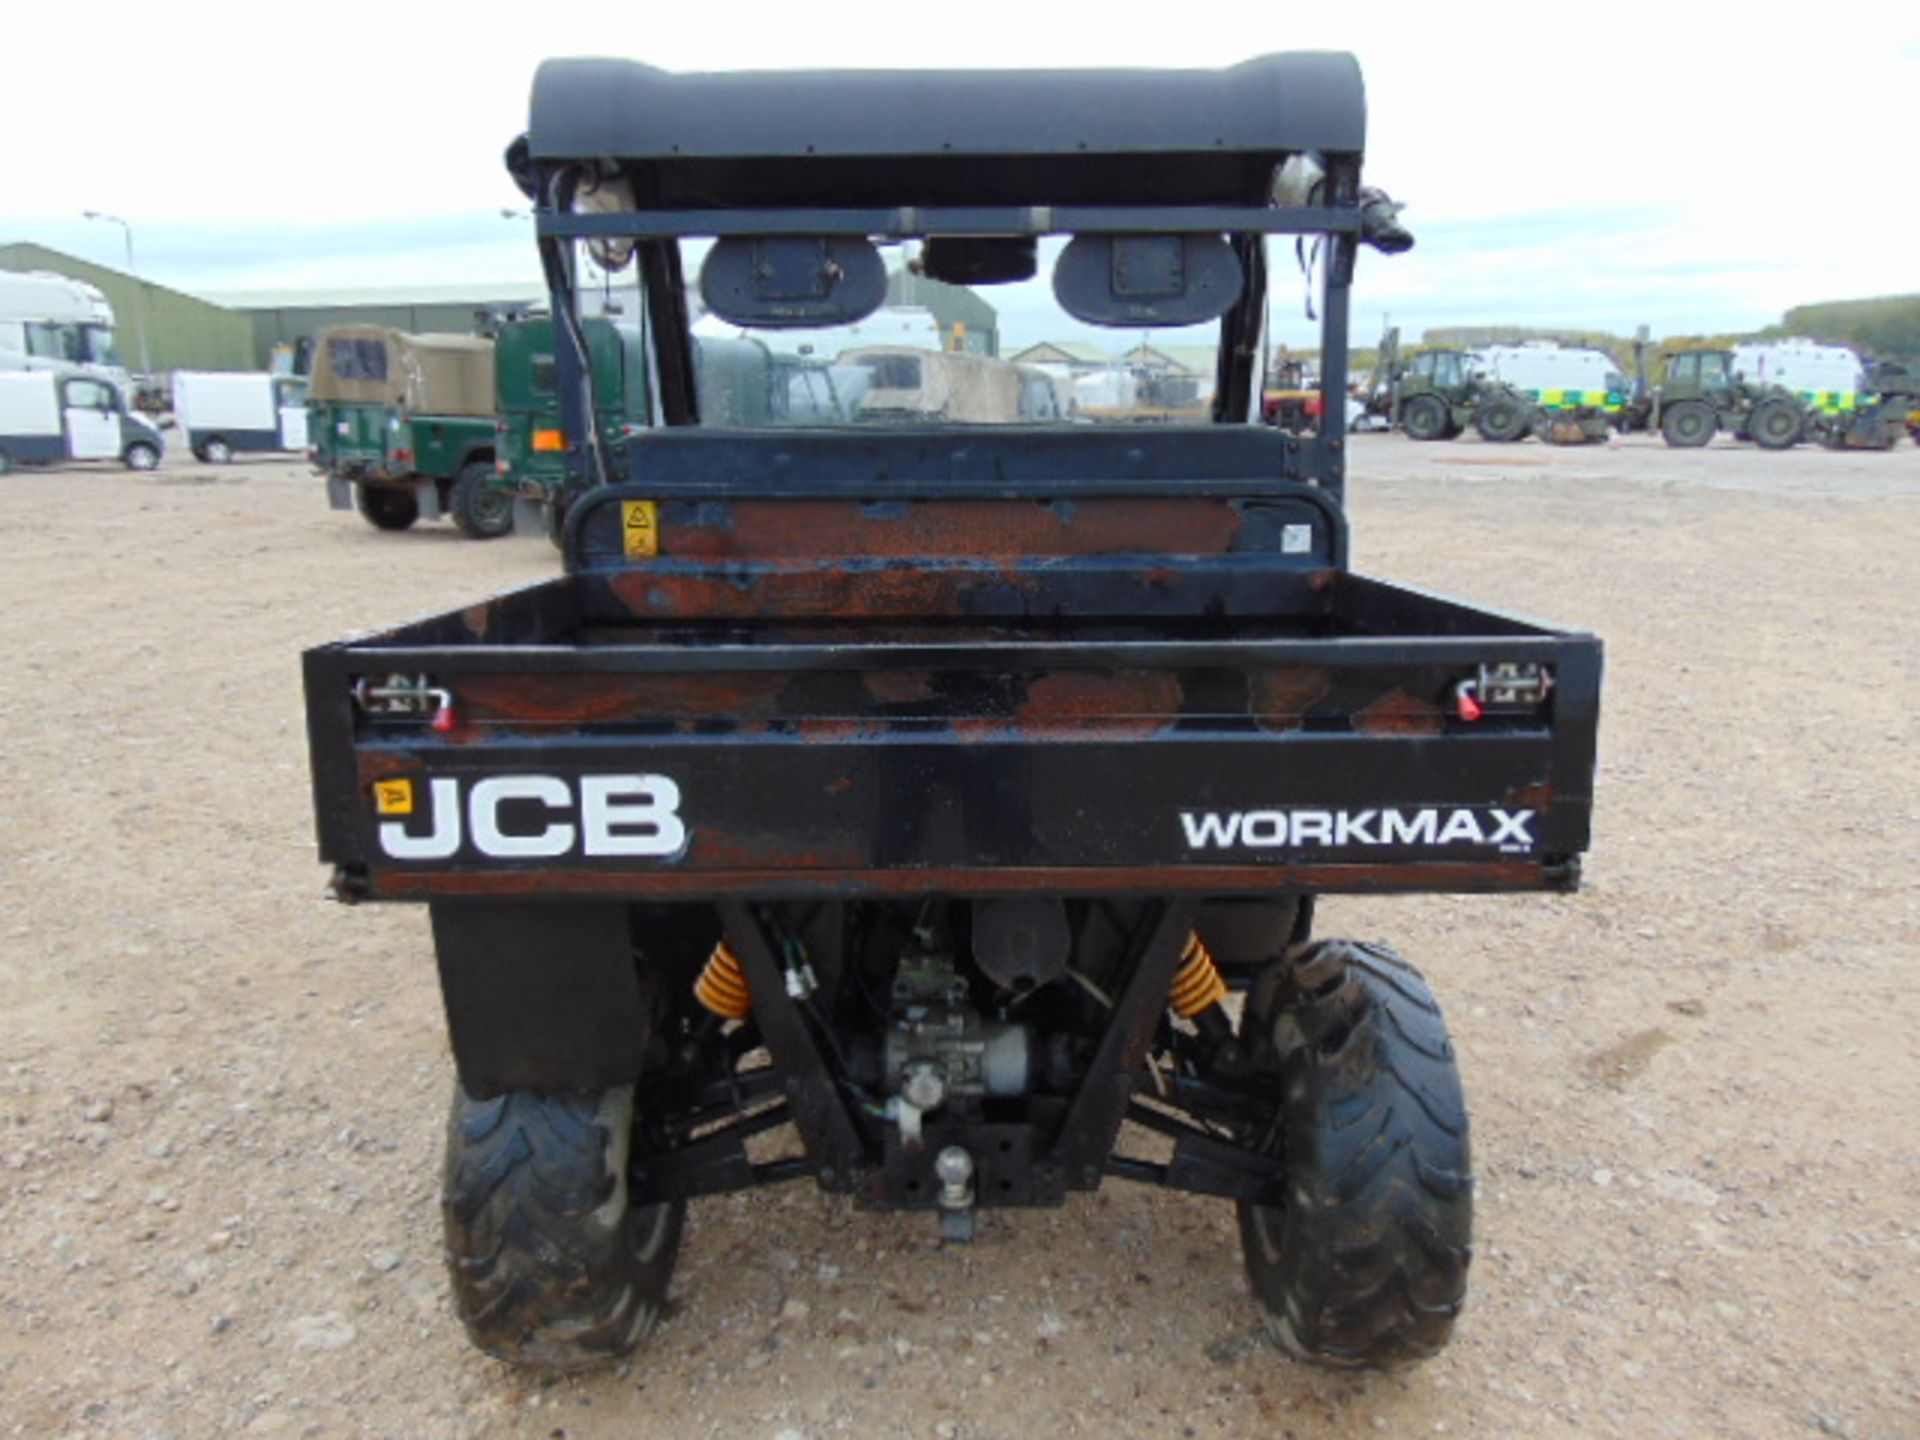 You Are Bidding On A Jcb Workmax 800d 4wd Diesel Utility